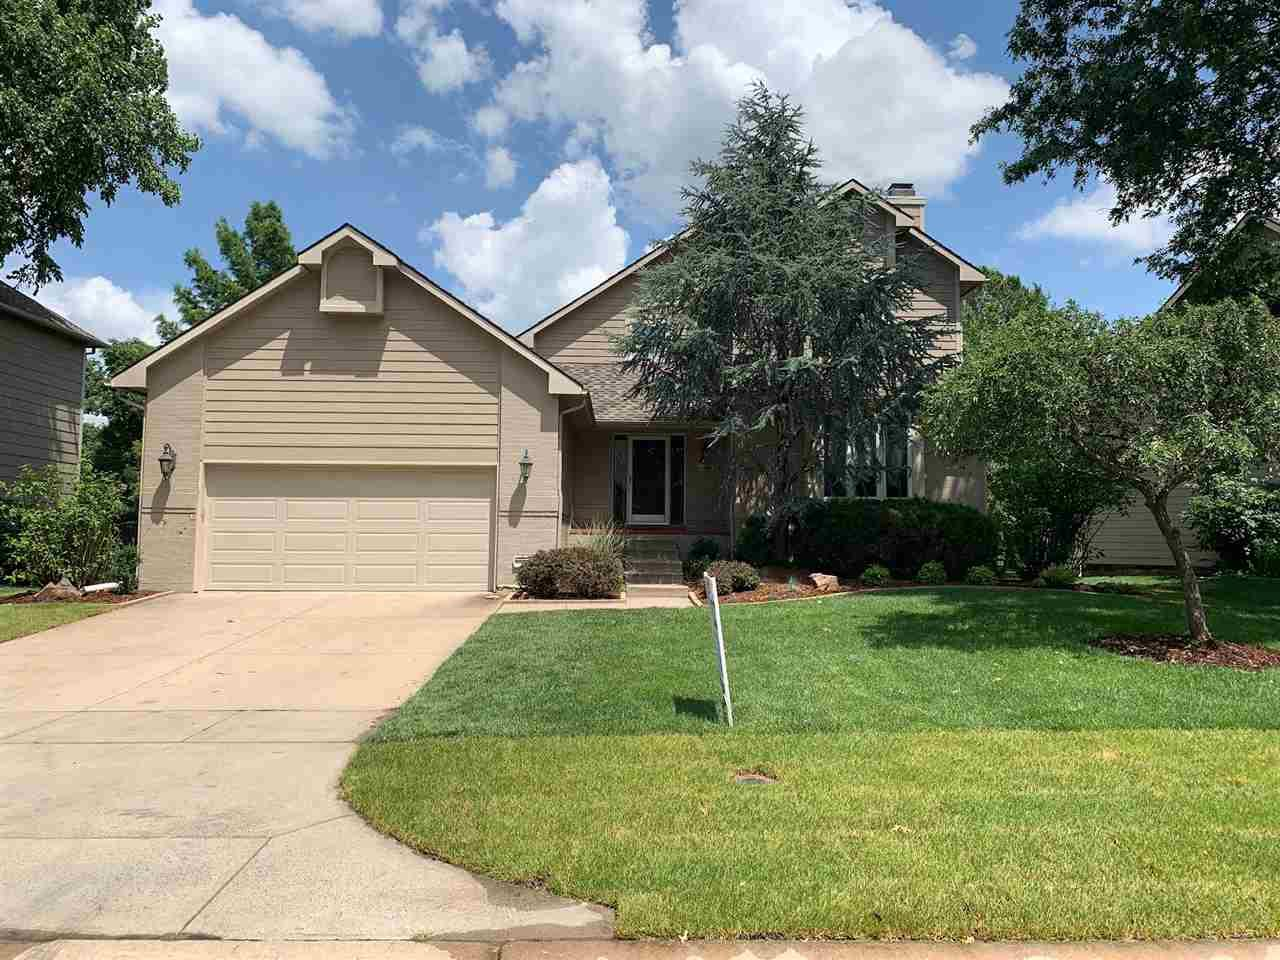 2416 N Spring Meadow St, Wichita, KS 67205 (MLS #551774) :: Select Homes - Team Real Estate